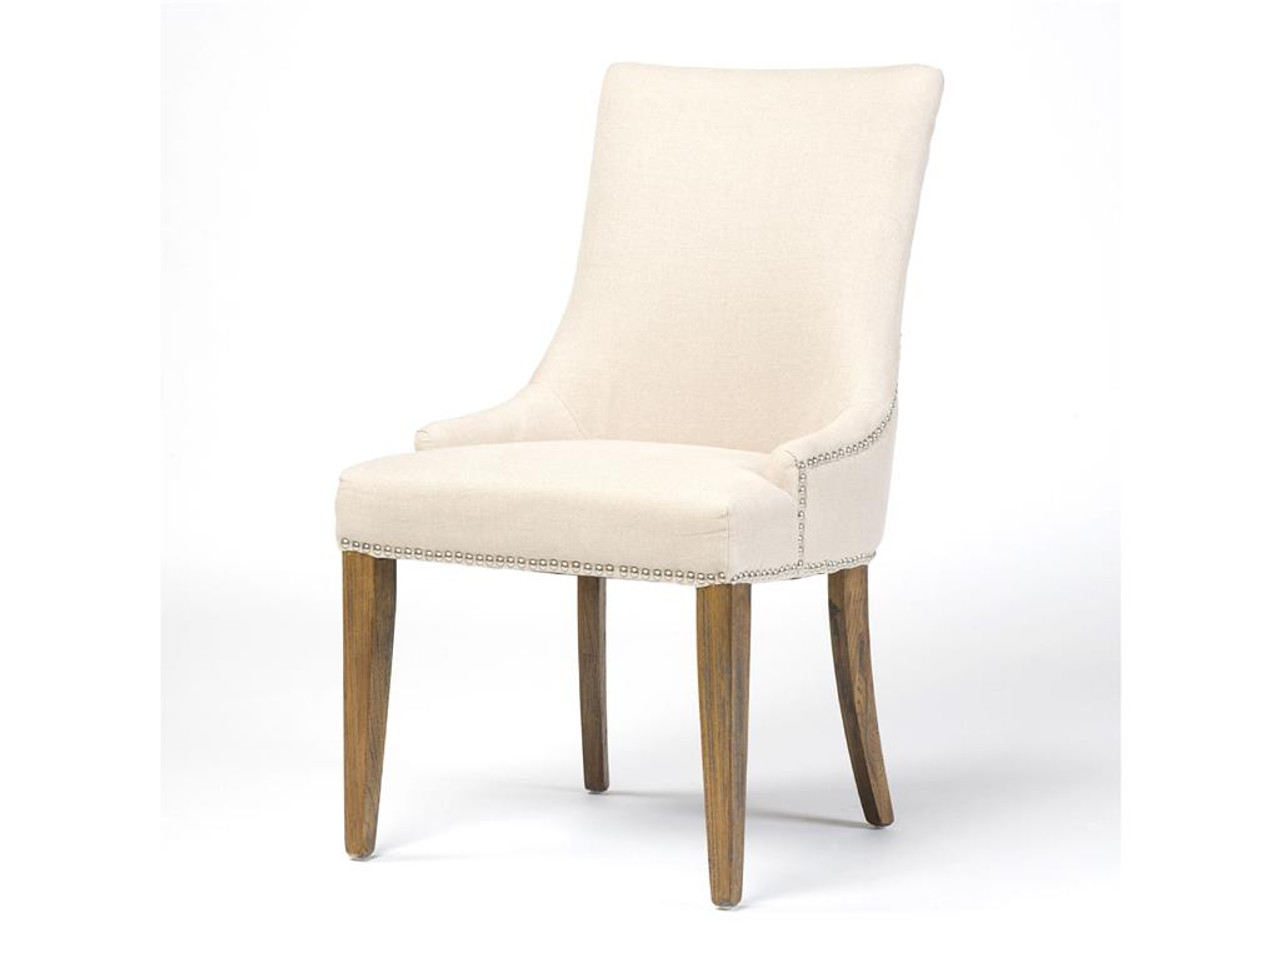 Astounding Ashford Linen Upholstered Nailhead Dining Chair Bralicious Painted Fabric Chair Ideas Braliciousco